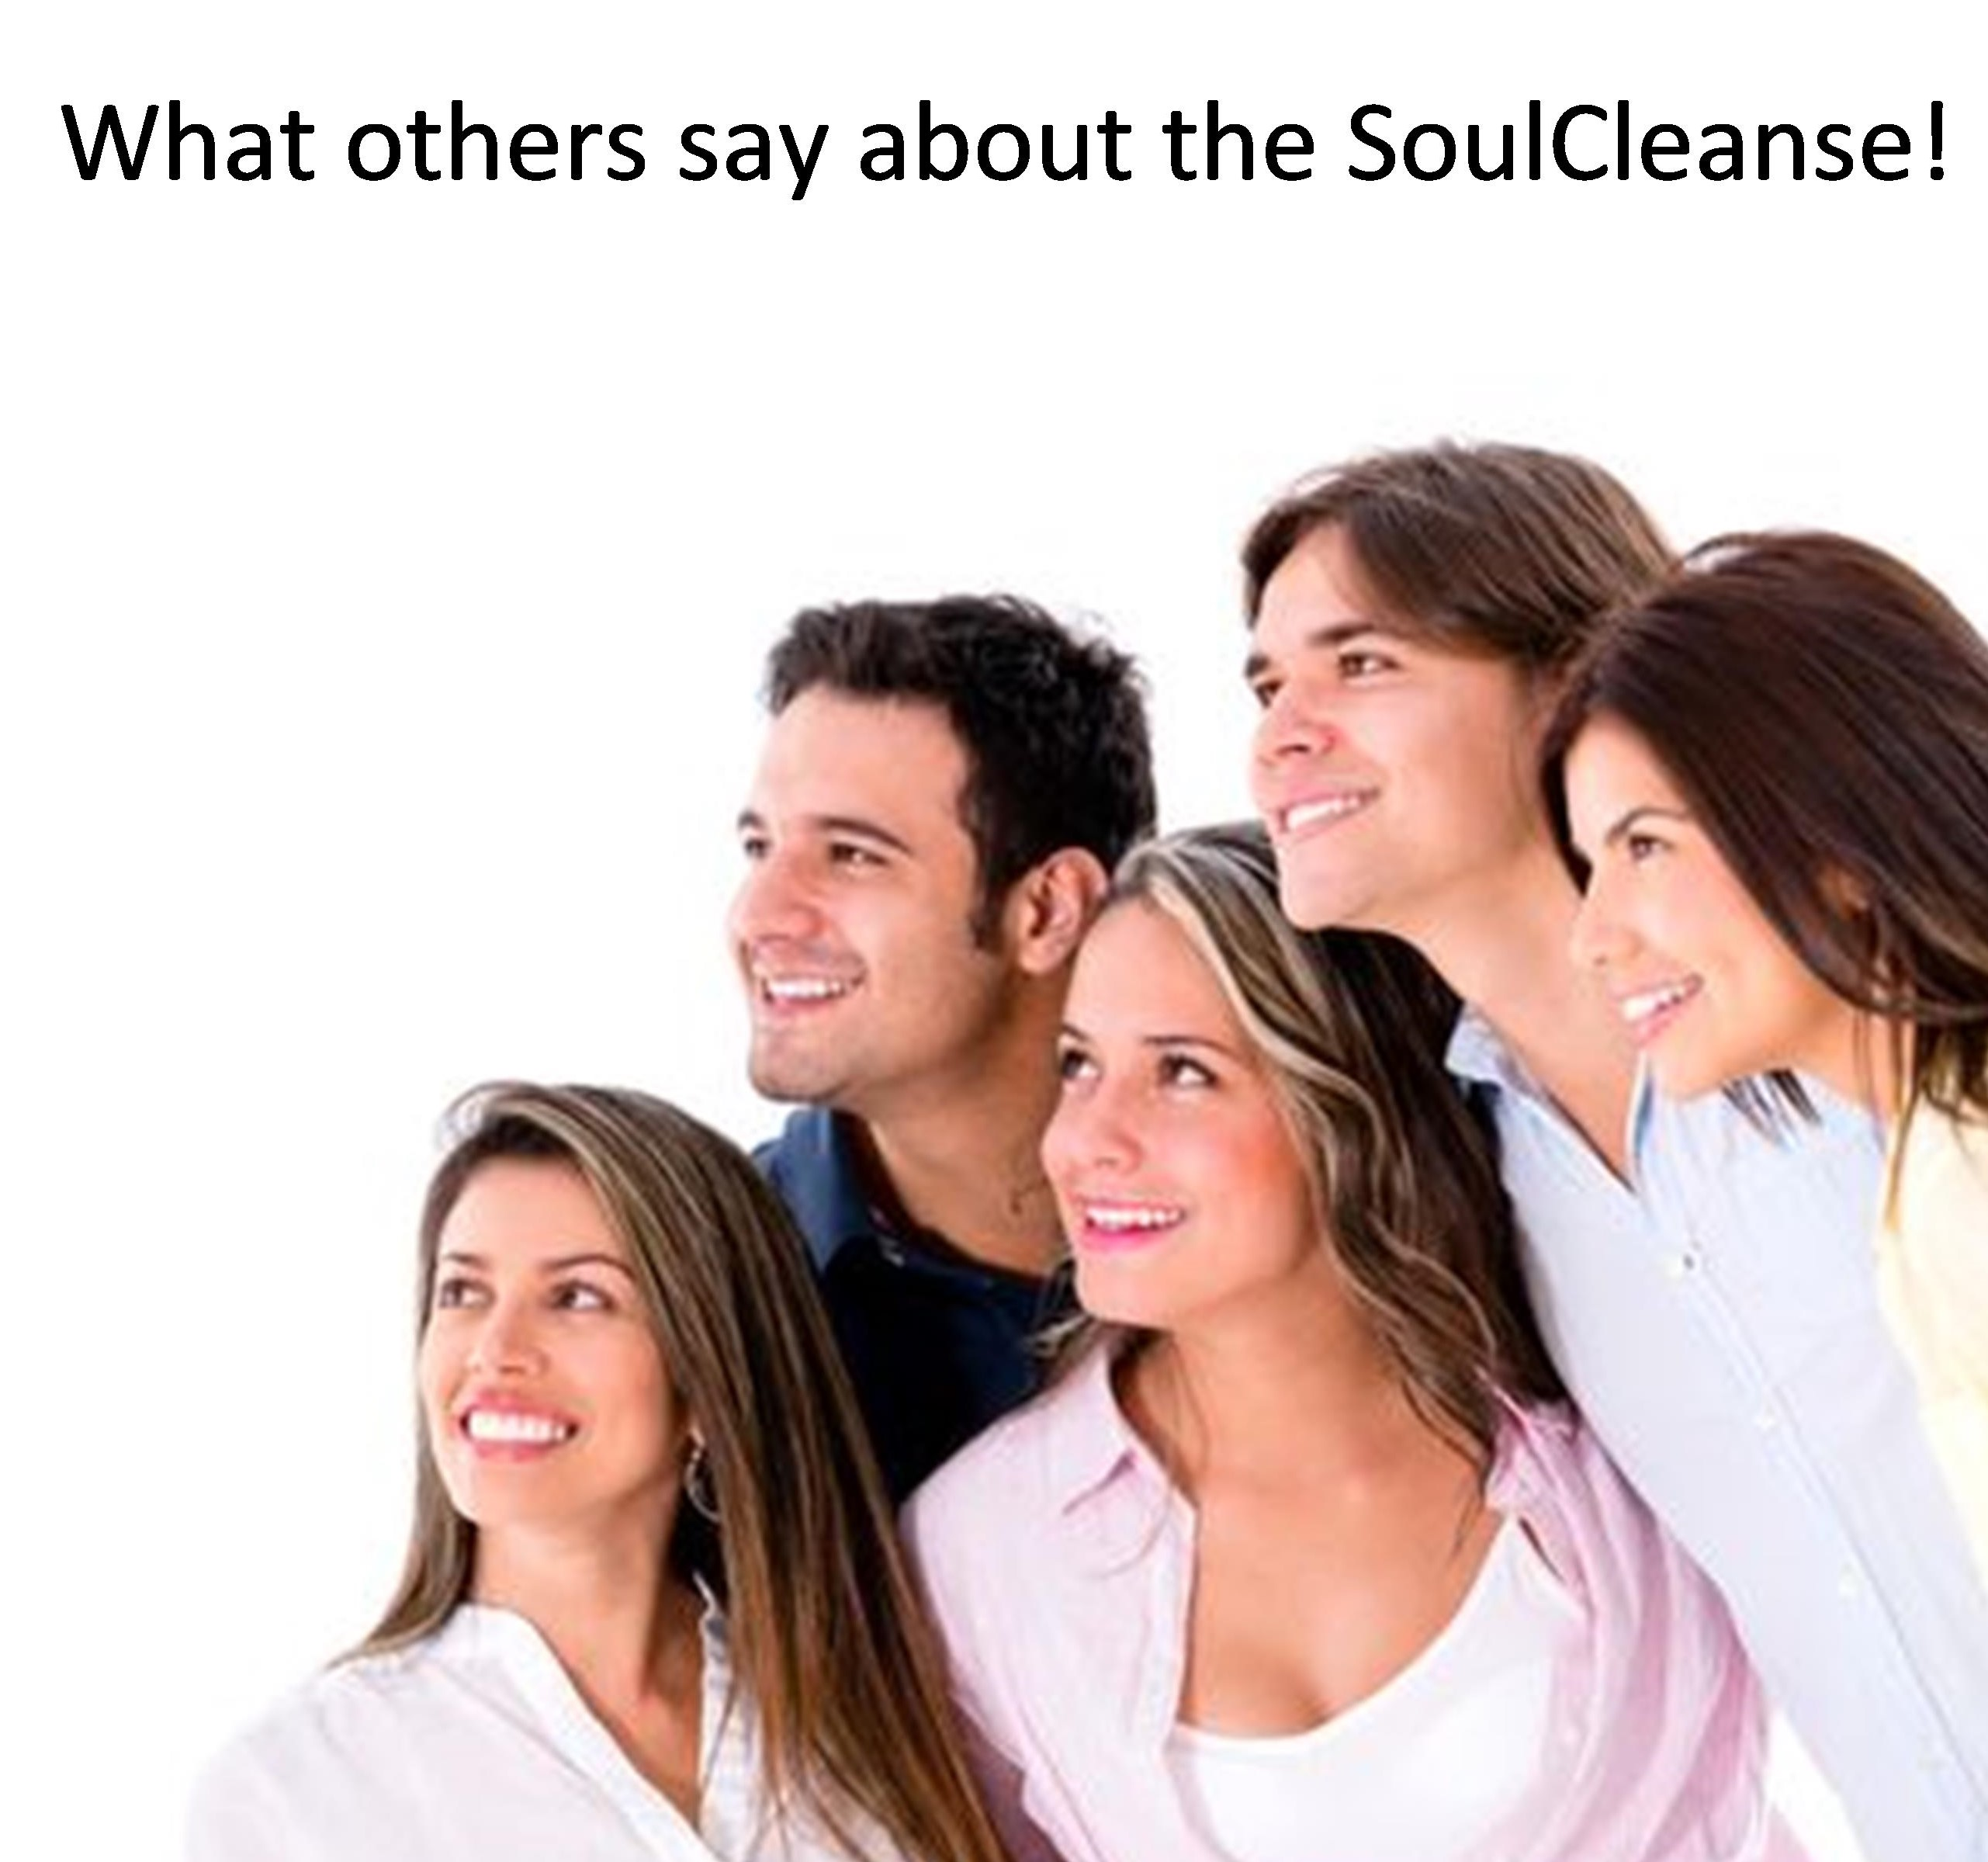 """5 adults with caption """"What others say about the Soulcleanse"""""""